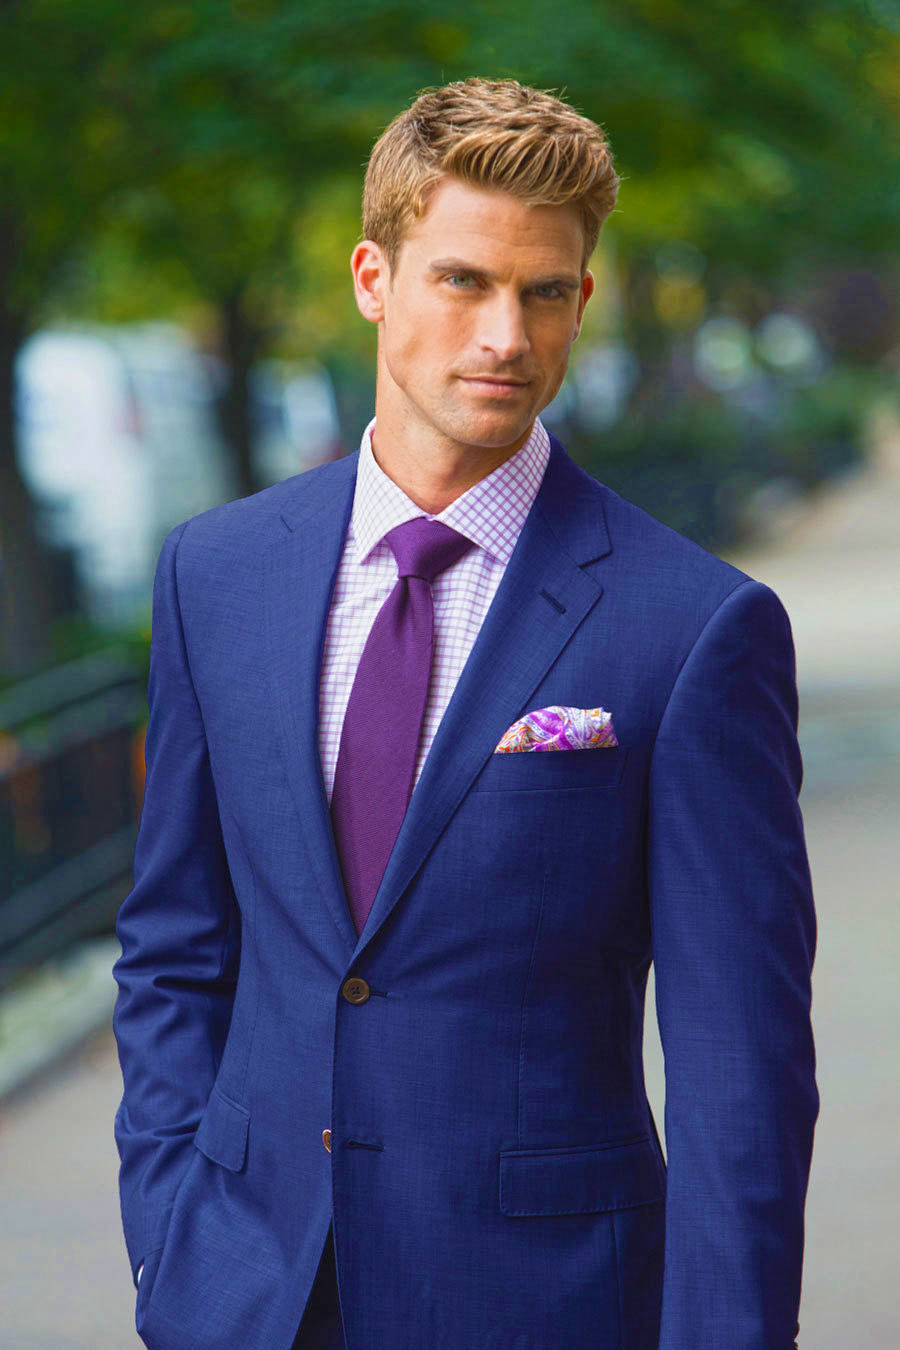 Blue suit with a purple shirt and slightly darker purple tie